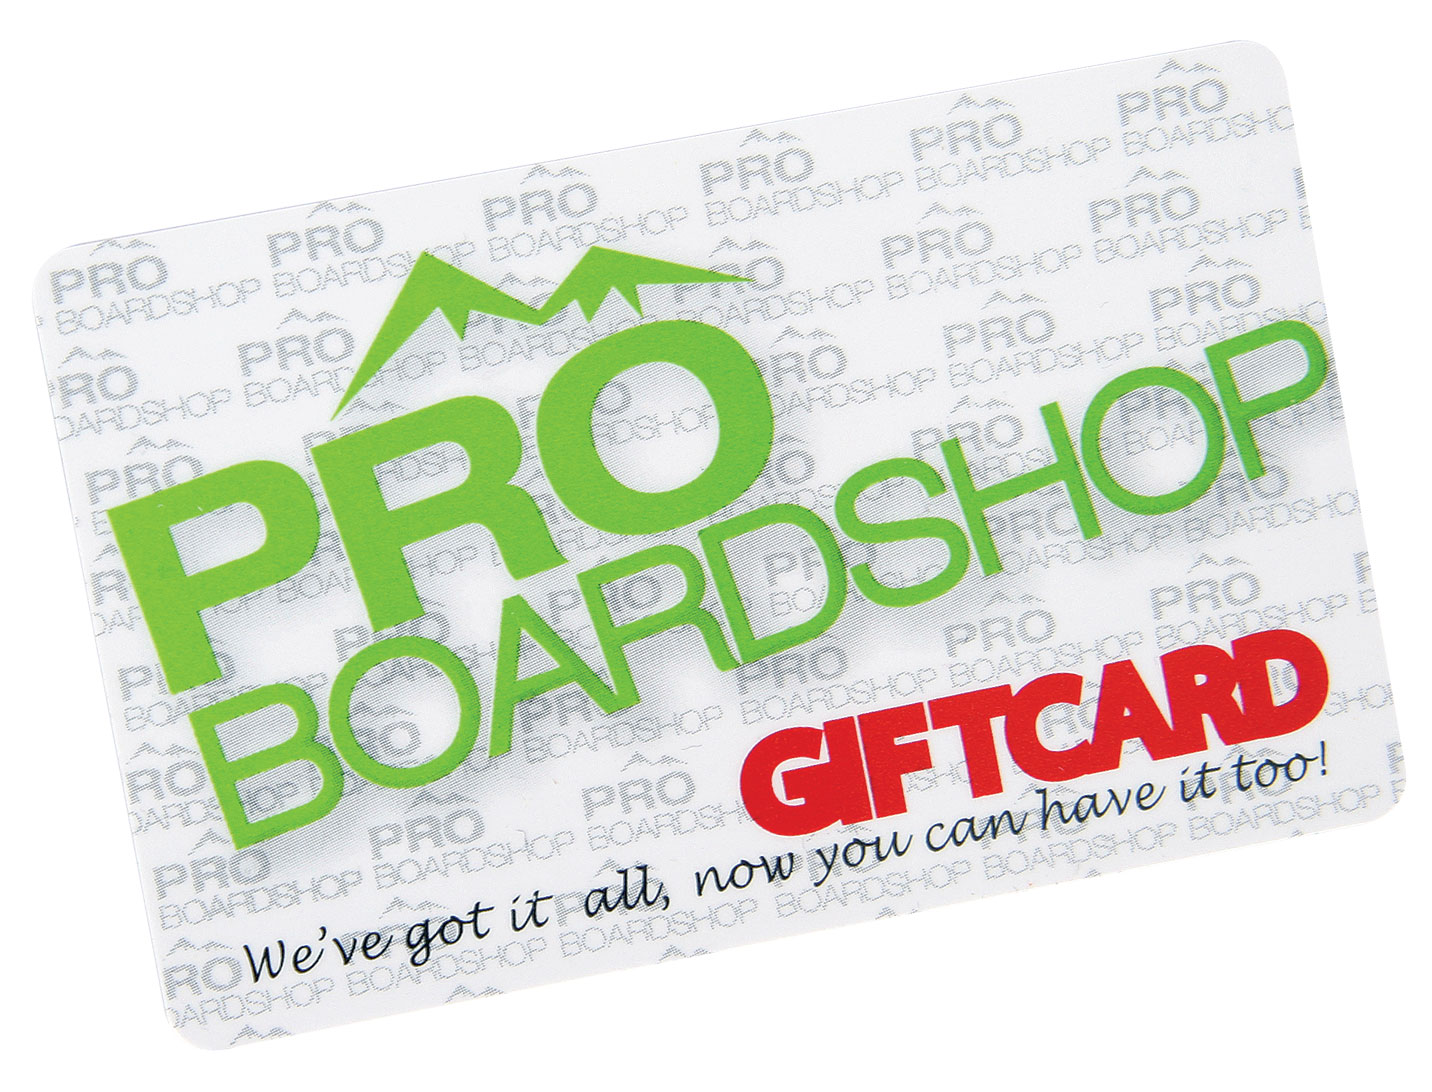 Let them choose! Whether you're having trouble picking the right gift, or you just want to make sure they get the perfect gear, a Proboardshop gift card is sure to please. No more worries about the right color, size, or current style. You'll get 5 stars for gift giving, and they'll get exactly what they want. Note:Currently, Proboardshop gift cards are only redeemable through phone sale. The lucky receiver should call 1-888-557-0551 to place their order and redeem their gift card. - $40.00